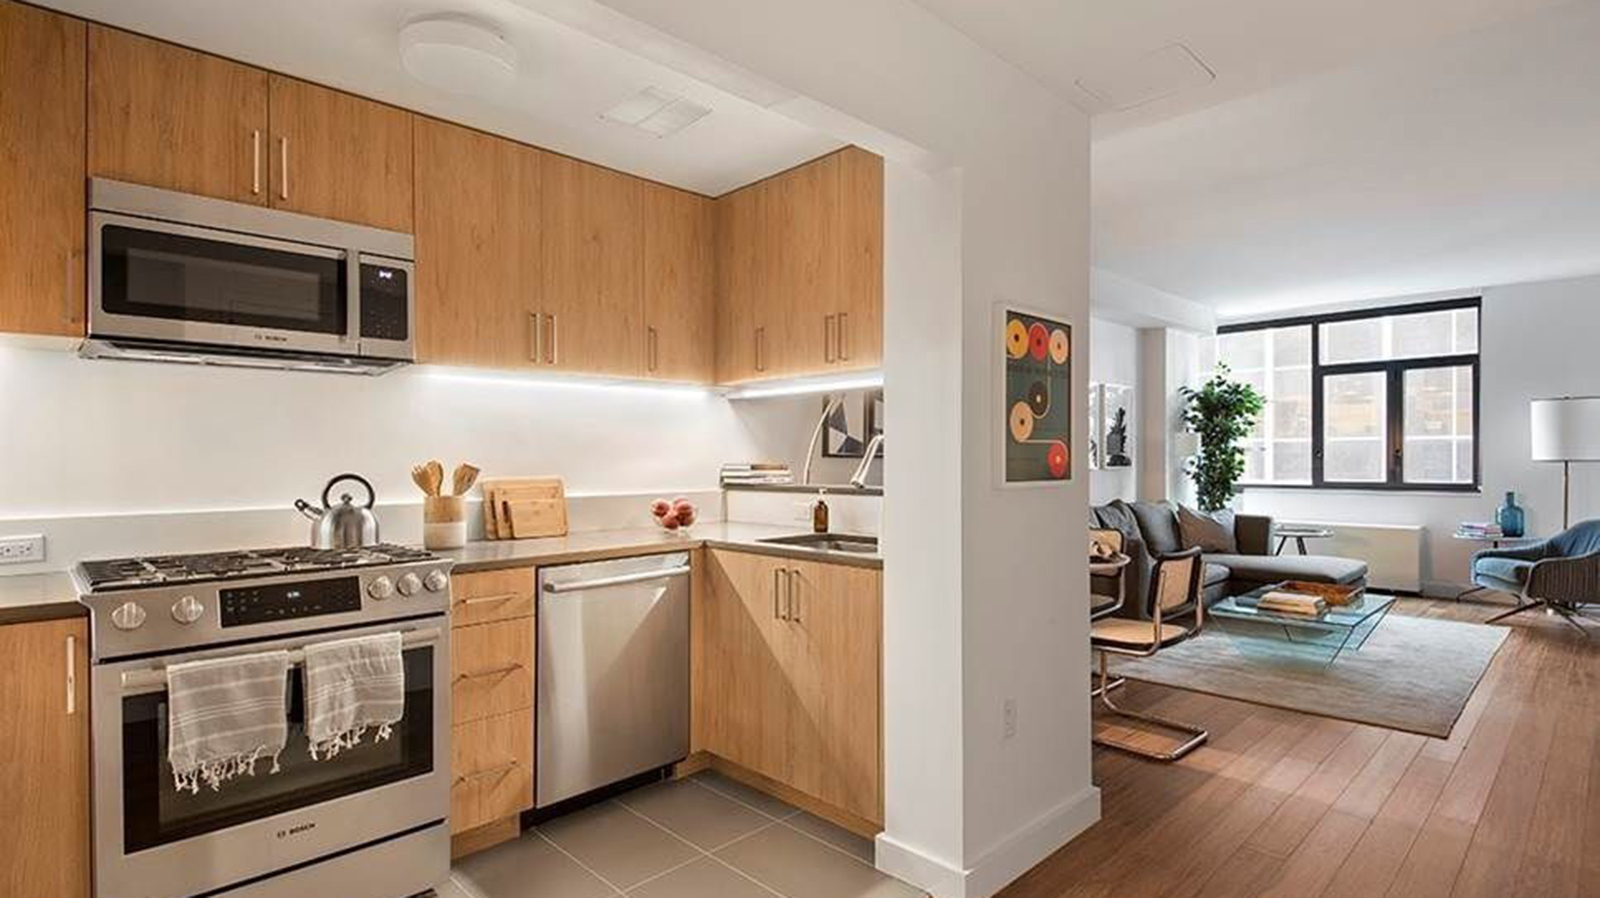 Frontier, 210 East 39th Street